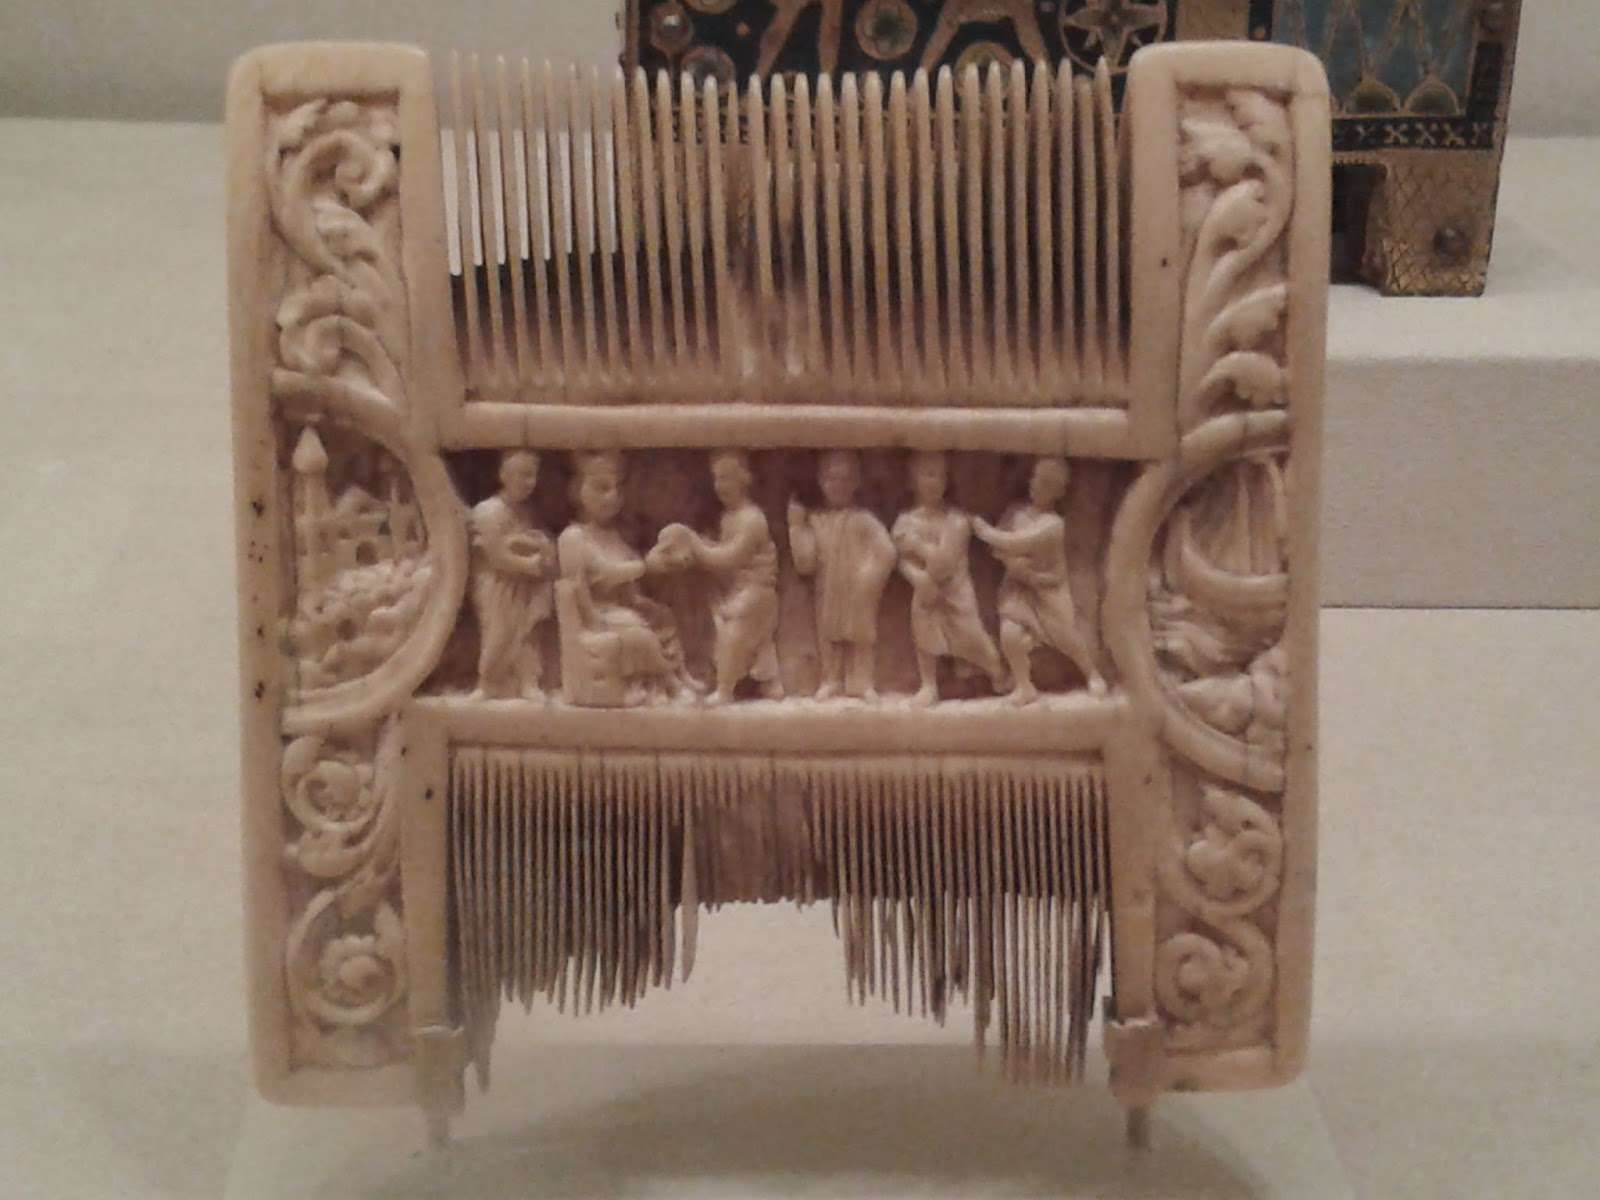 english historical fiction authors the murder of thomas becket henry makes becket archbishop of canterbury liturgical comb c 1200